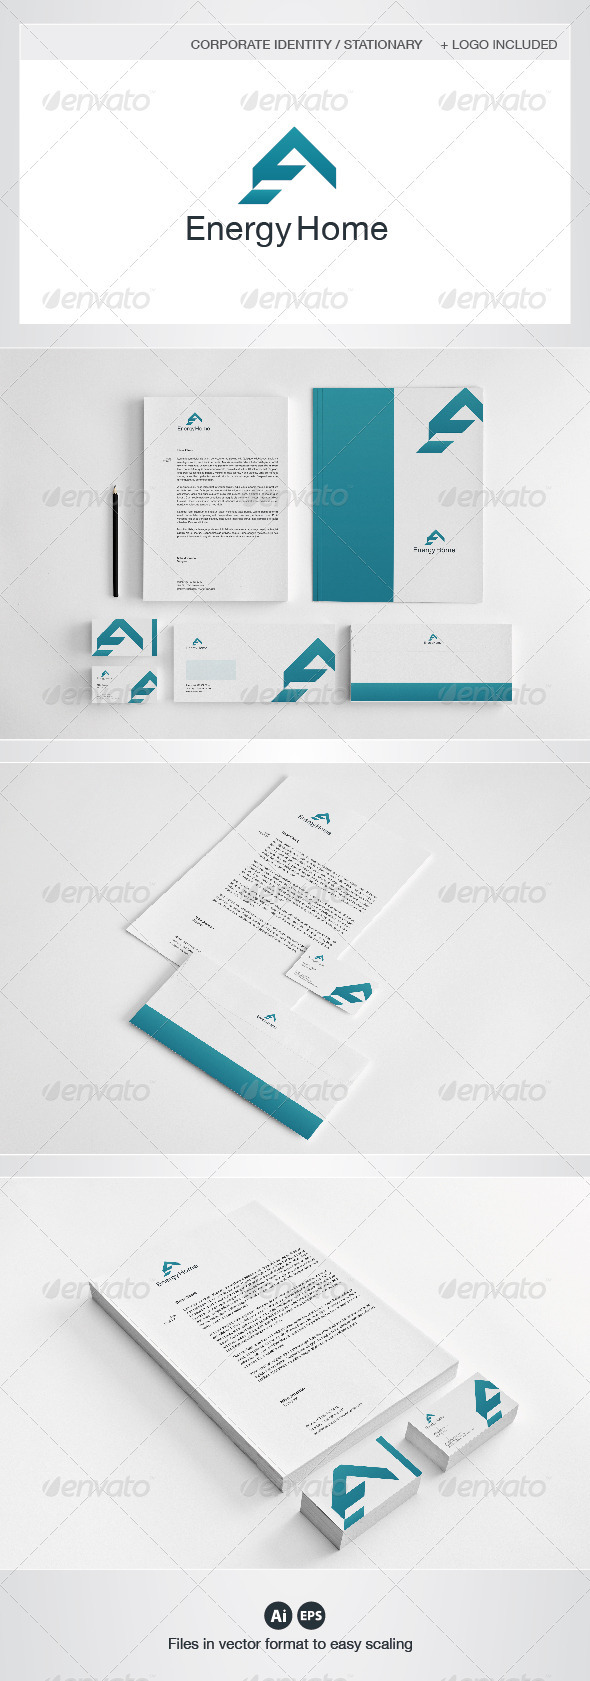 Energy Home Corporate Identity